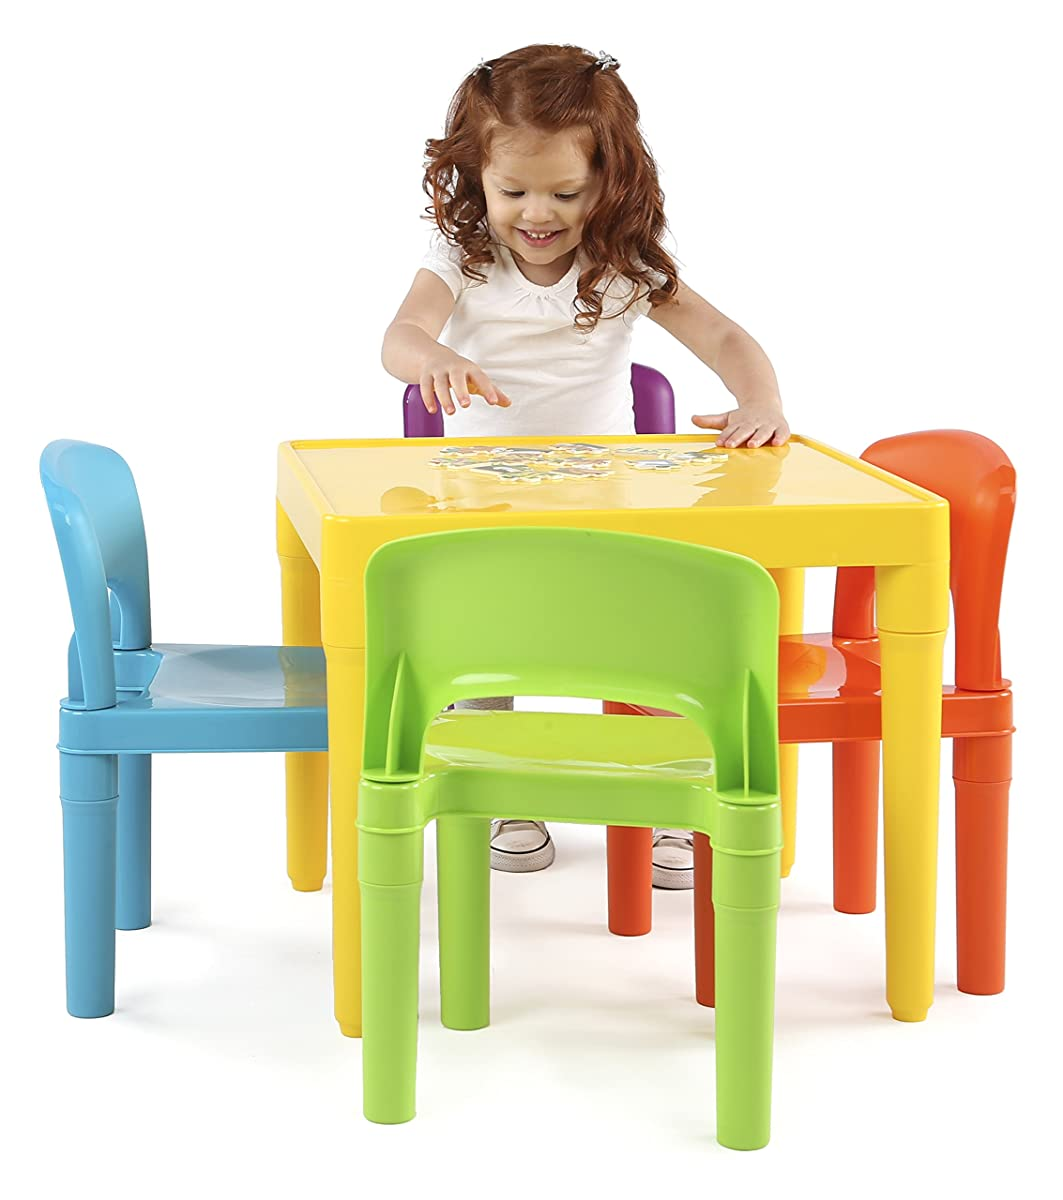 tot tutors table and chairs squirrel chair feeder kids plastic 4 set vibrant colors